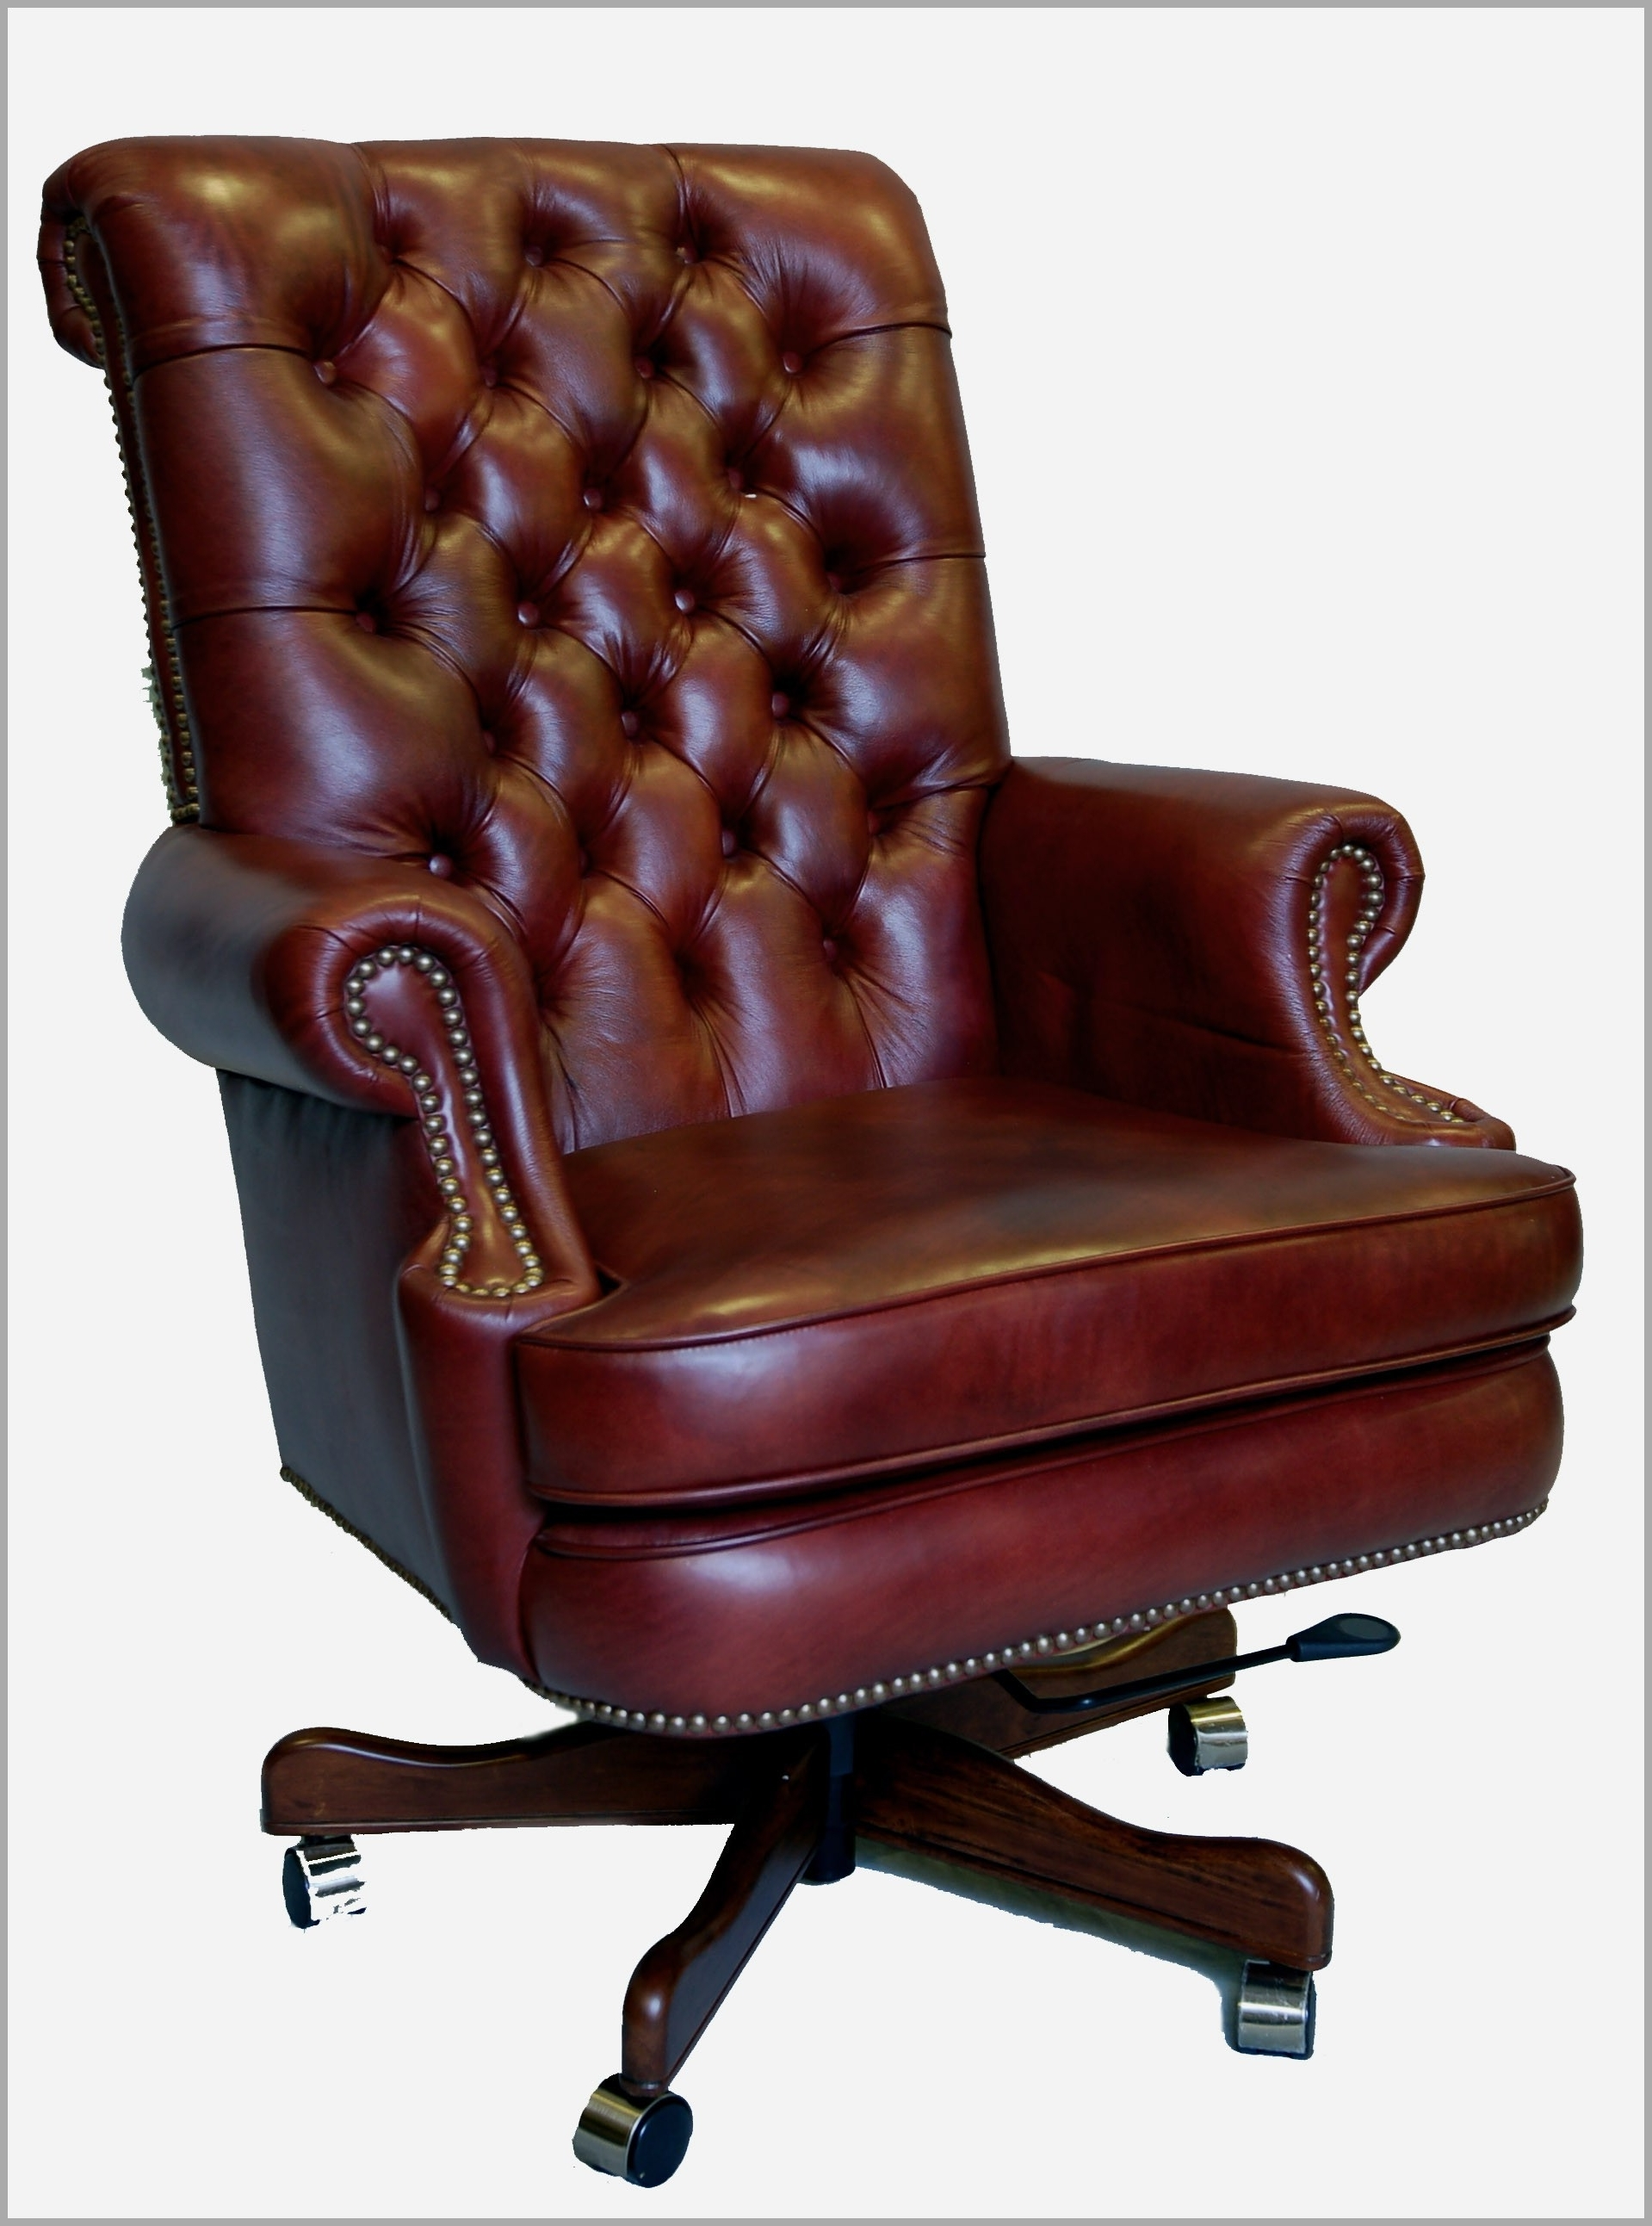 26 Lovely Real Leather Office Chair – Dianahsplace Inside 2018 Genuine Leather Executive Office Chairs (View 3 of 20)